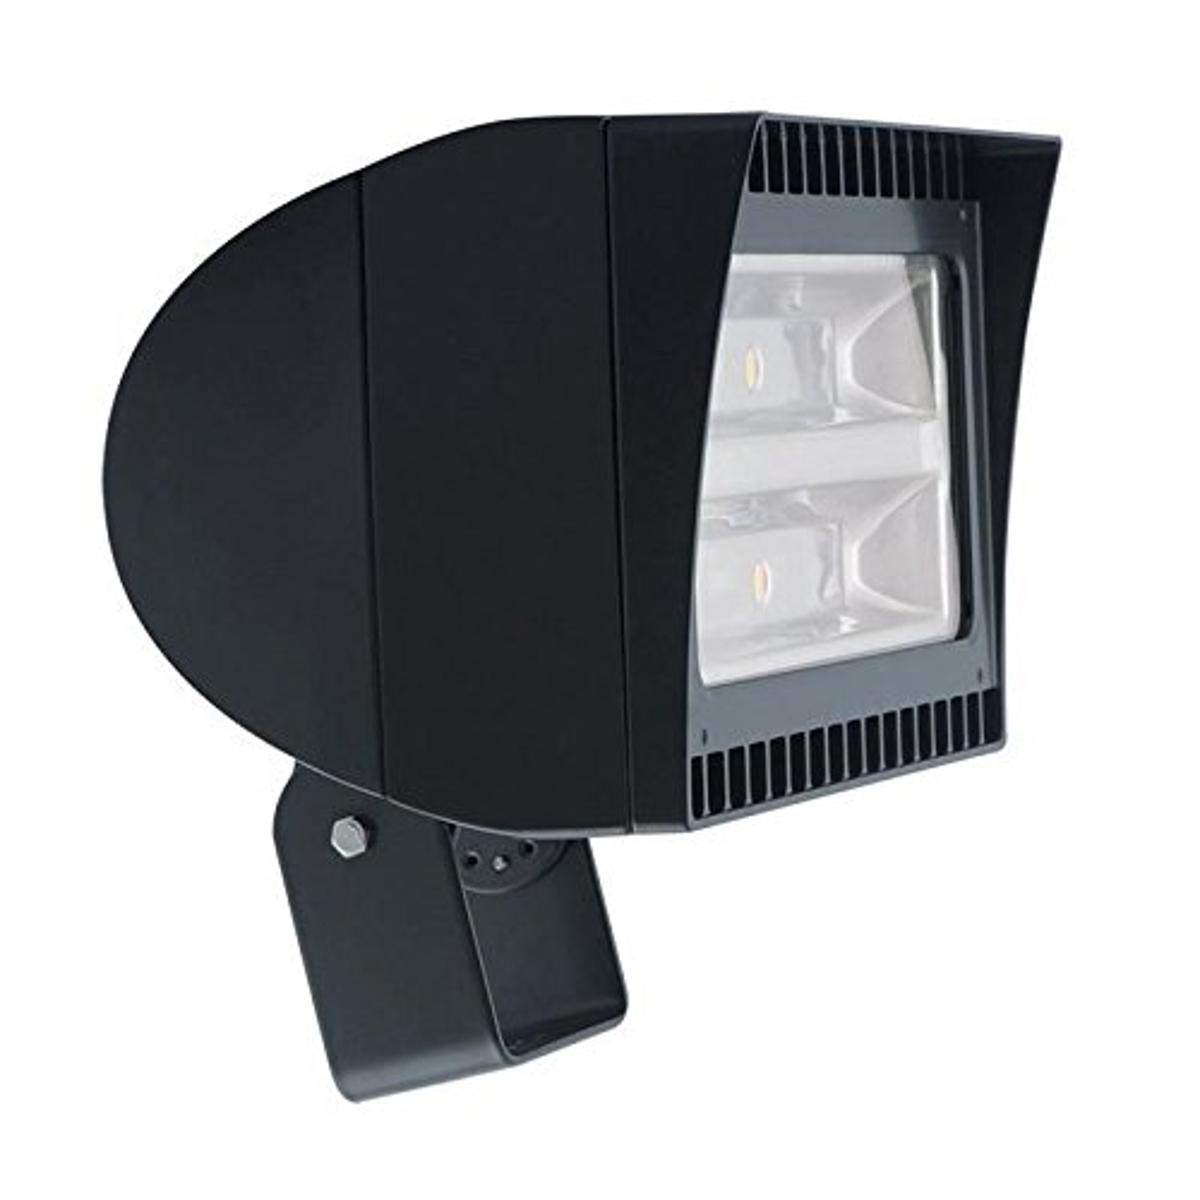 RAB FXLED150T 150W LED Landscape, Flood Light Fixture, 120 208 240 277V, Bronze Finish, Multi